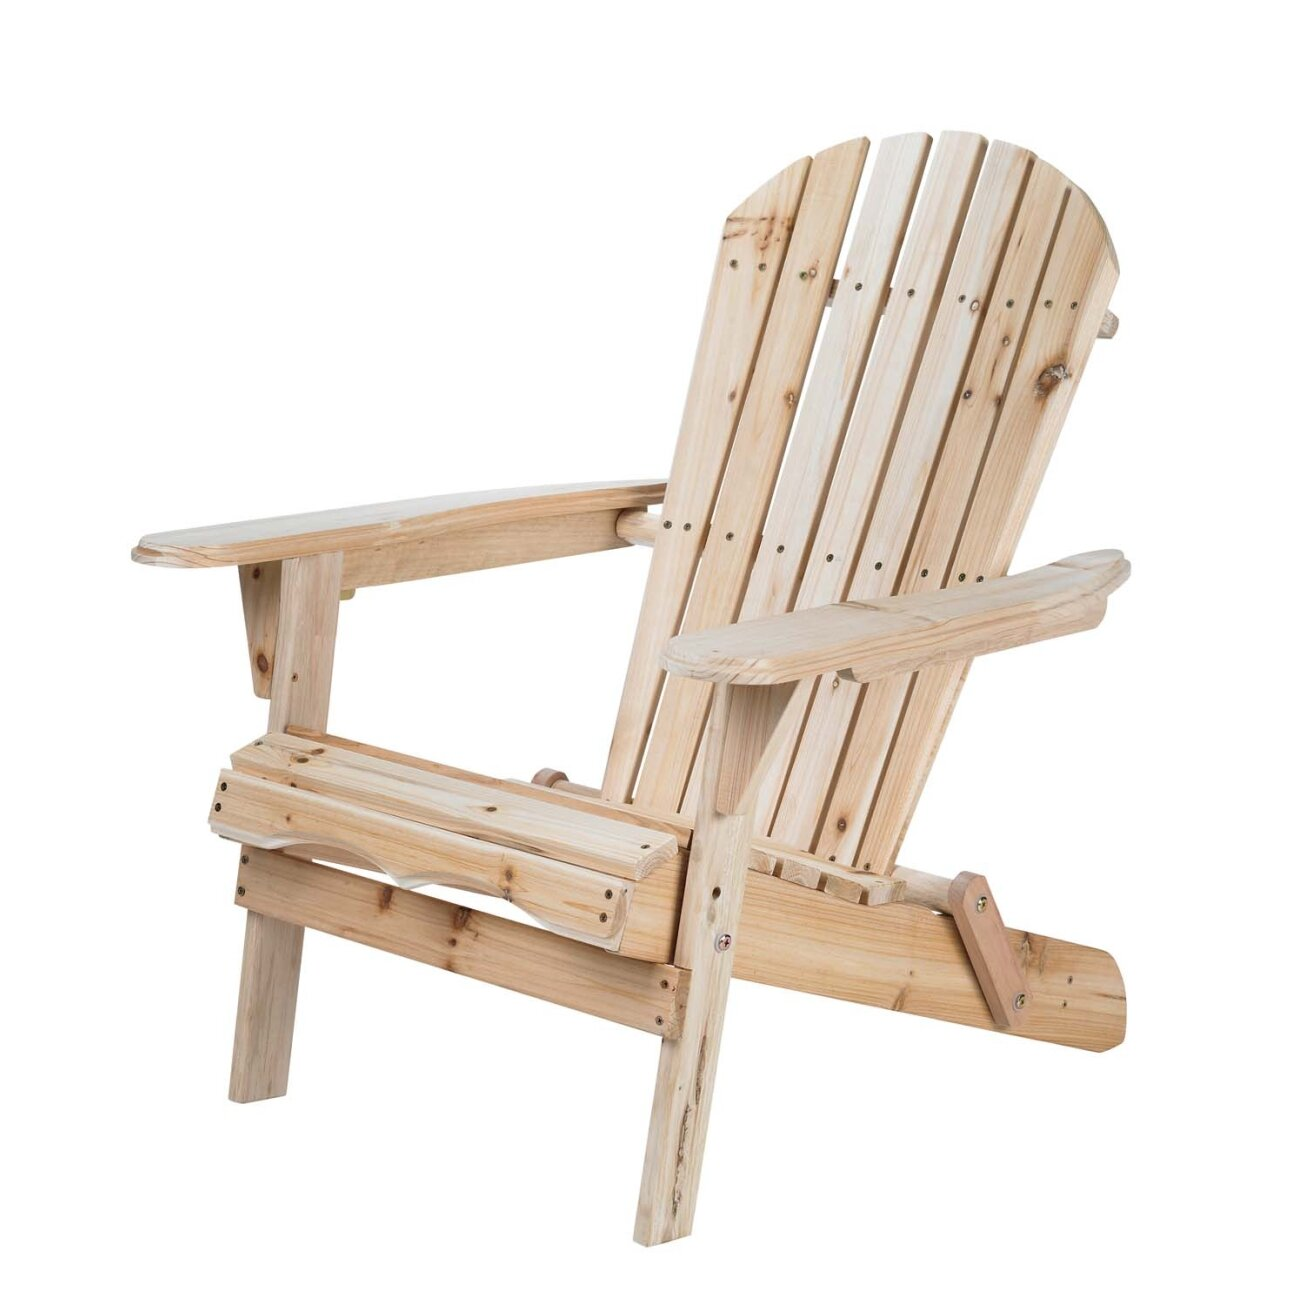 Lowes Lounge Chairs | Lowes Rocking Chairs | Lowes Lawn Chairs